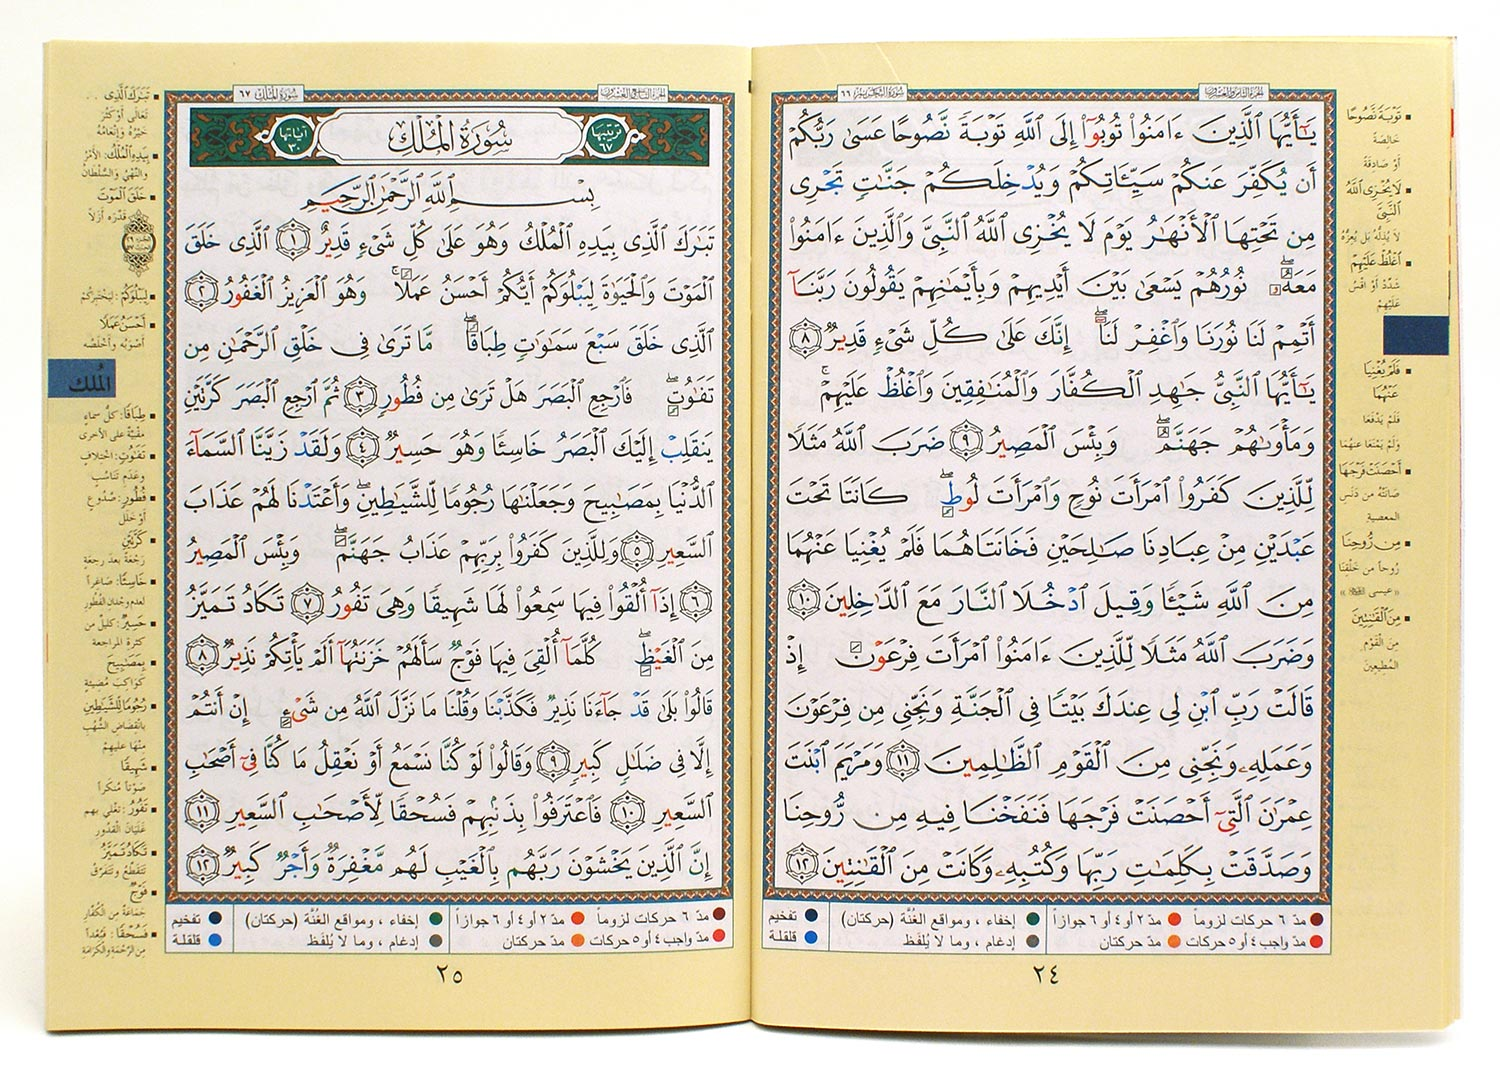 Tajweed Quran Three Parts Amma Tabarak Qad Samea